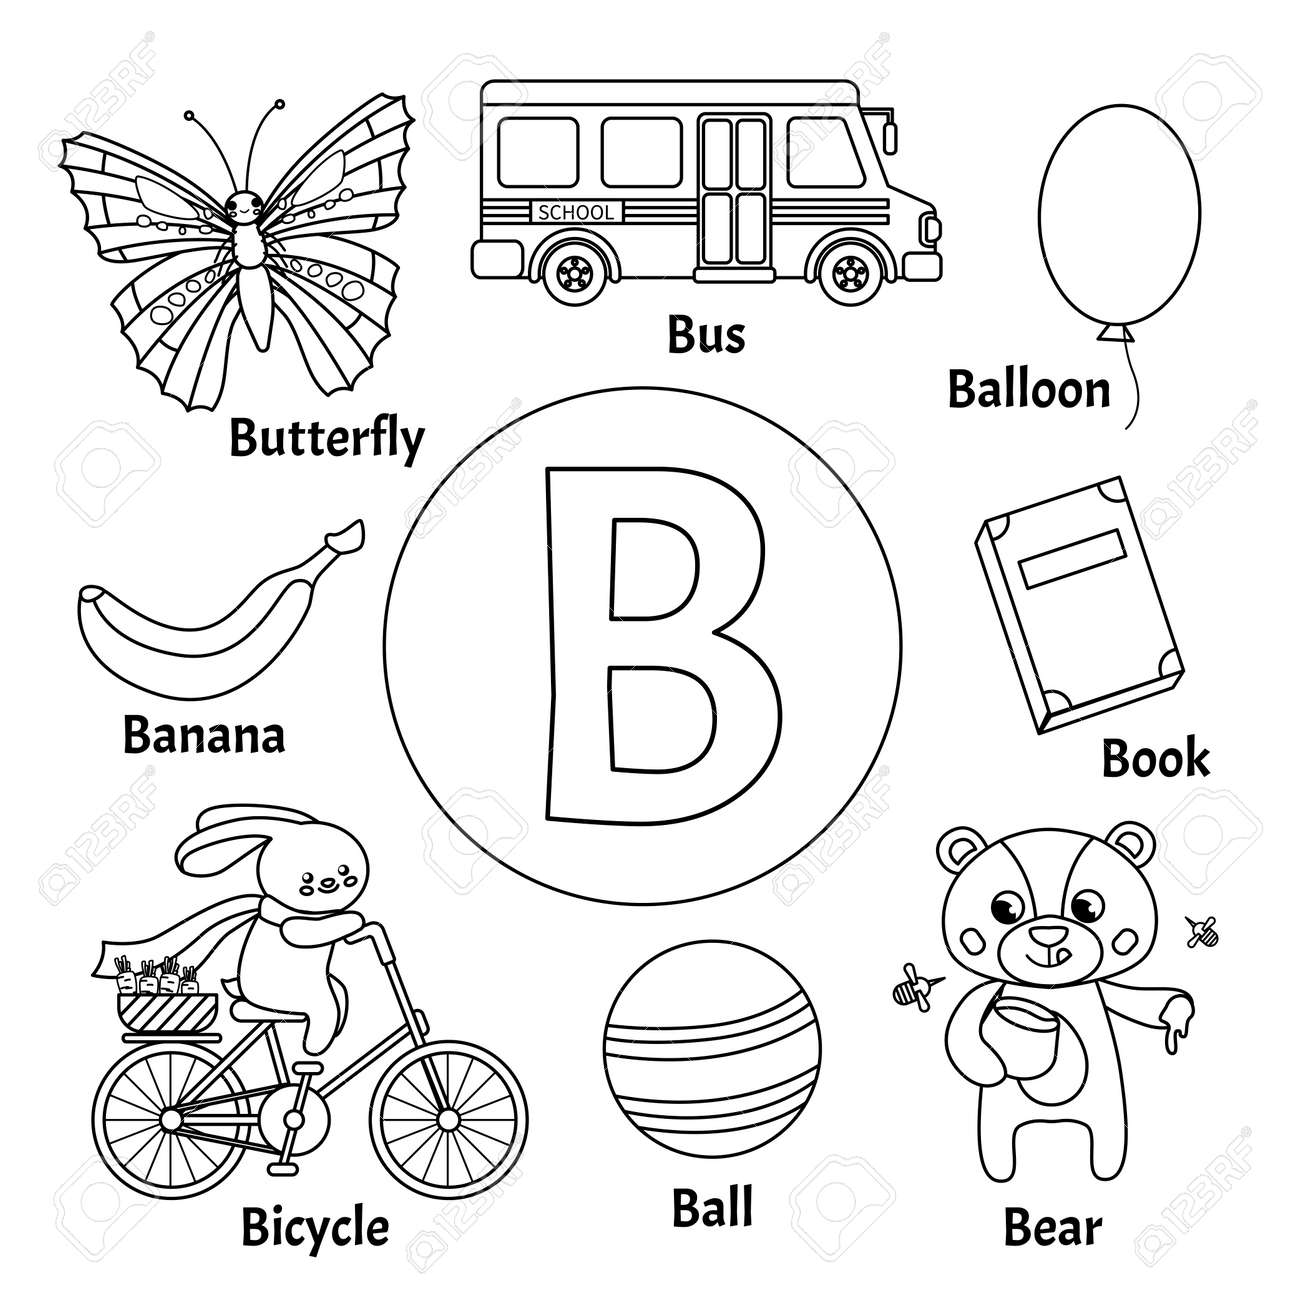 Learning Card Alphabet Letter B Set Of Cute Cartoon Illustrations Royalty Free Cliparts Vectors And Stock Illustration Image 126973629